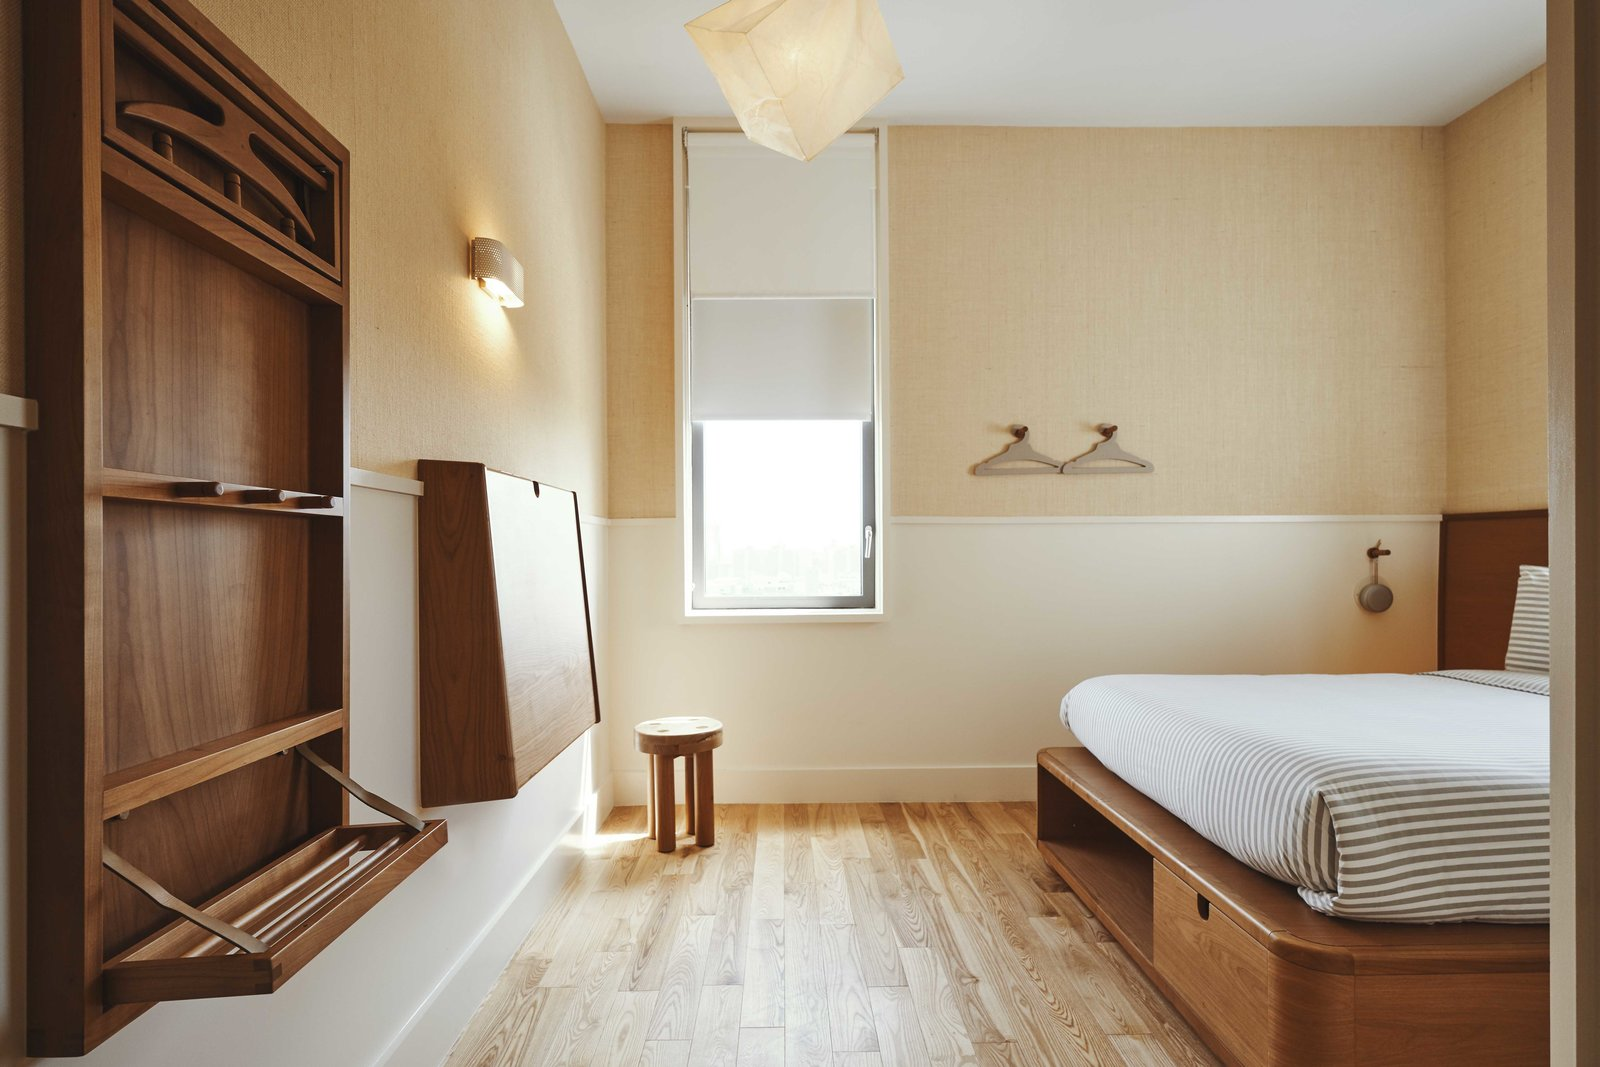 Bedroom, Wall, Bed, Wardrobe, Lamps, Ceiling, Night Stands, Light Hardwood, and Pendant The rooms exude clean lines with all built in furniture aside for a stool.  Best Bedroom Wardrobe Bed Wall Photos from Ace Hotel's Sister City Opens in New York—and it's a Beaut